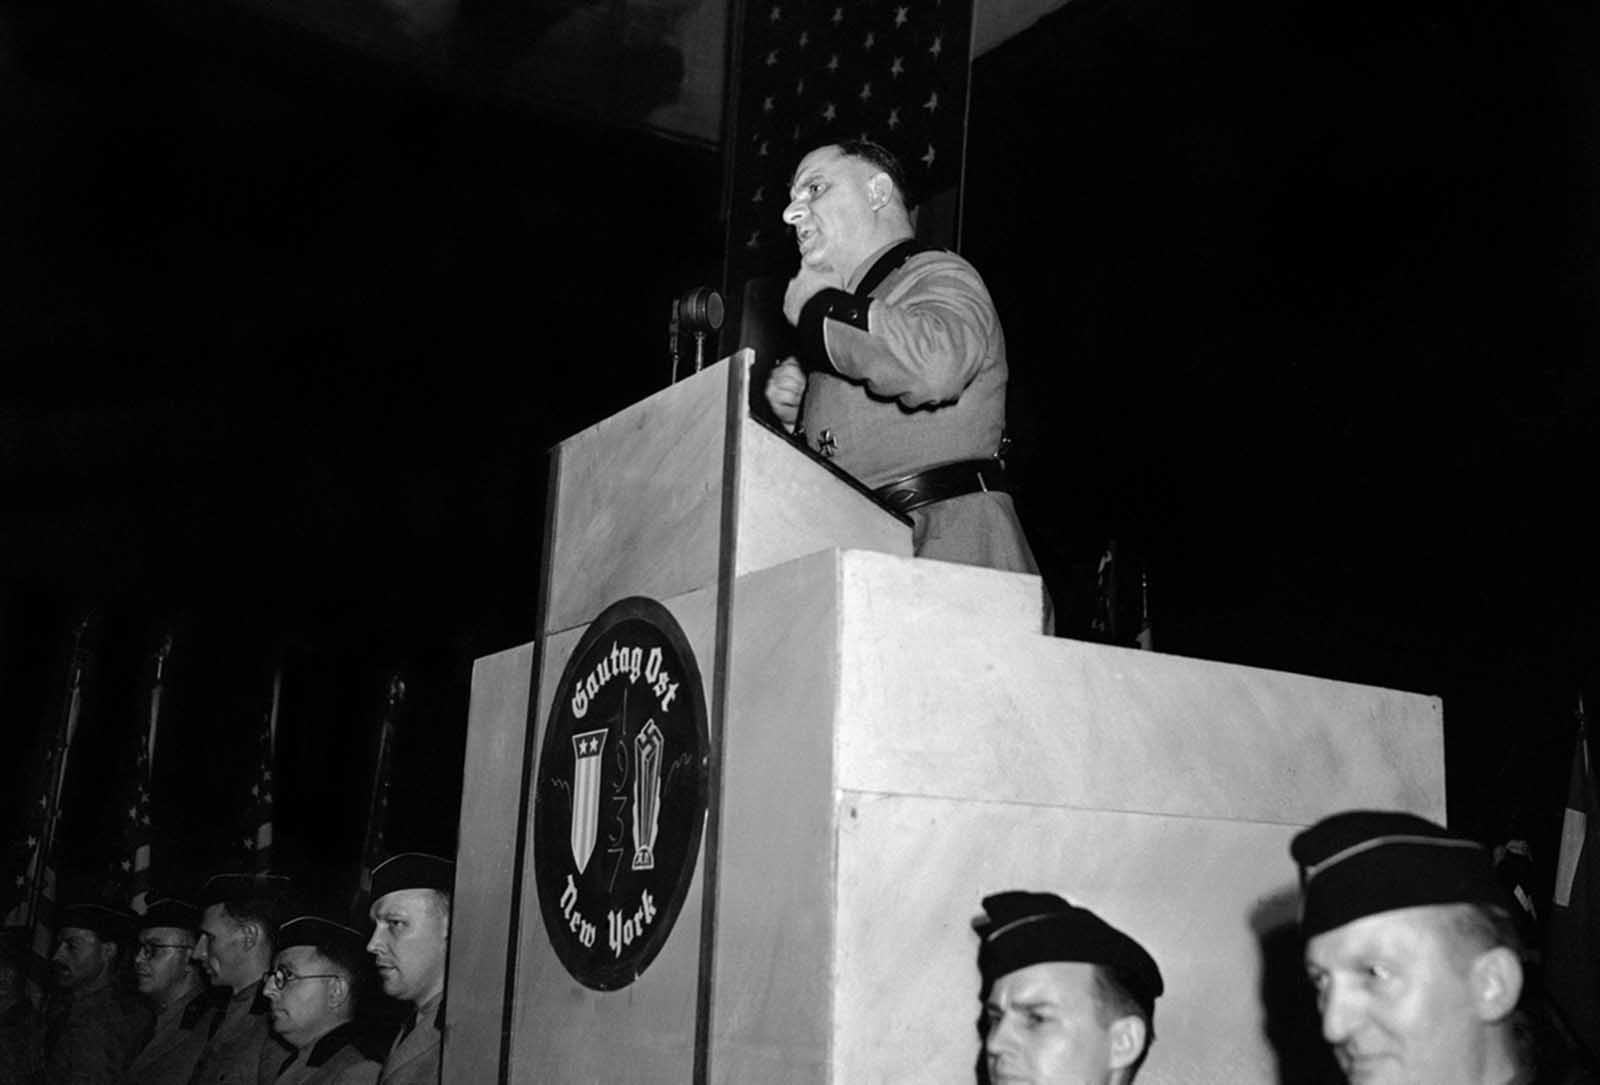 Original Caption: Fritz Kuhn, in the full uniform of a Storm Trooper, national leader of the Bund gestures from the rostrum at Madison Square Garden in New York, on February 20, 1939 while he uttered imprecations against Jews over and over.